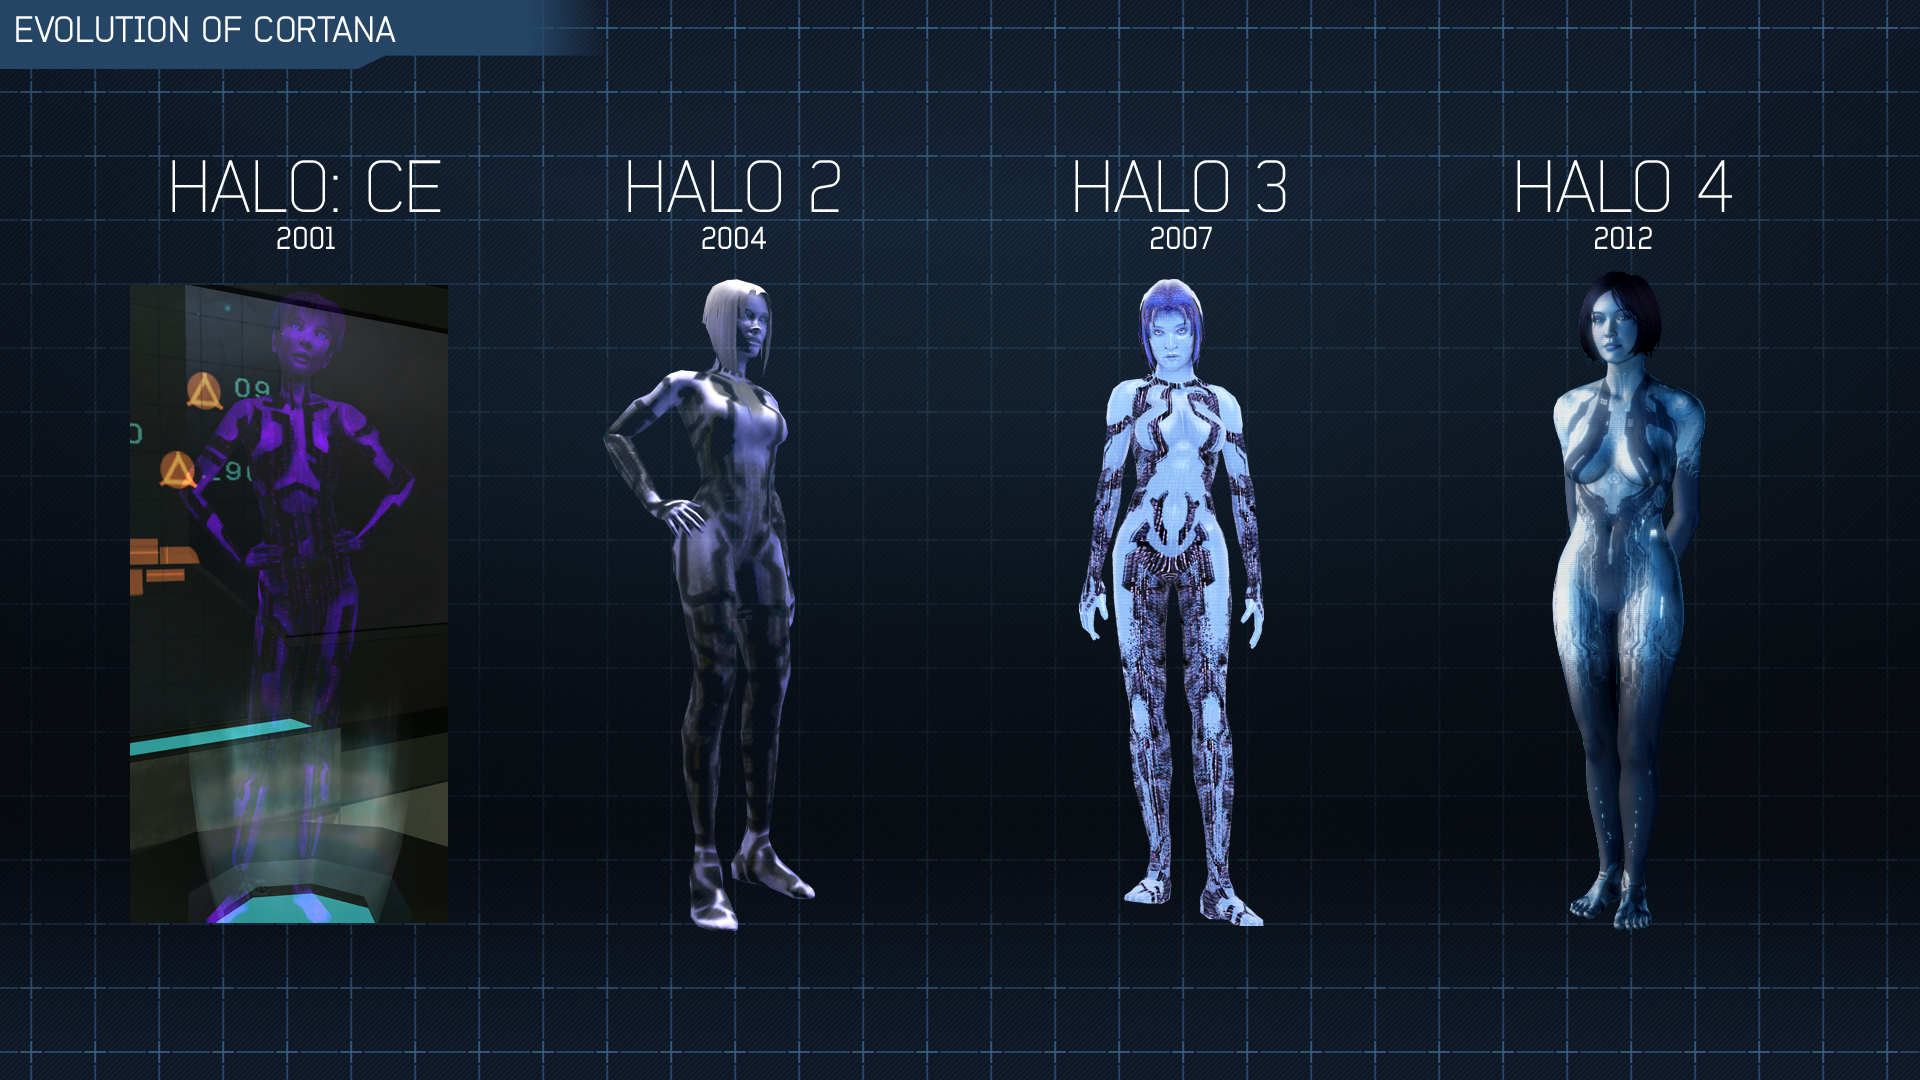 http://images2.wikia.nocookie.net/__cb20130714215933/halo/es/images/3/38/Cortana_comparacion.jpg